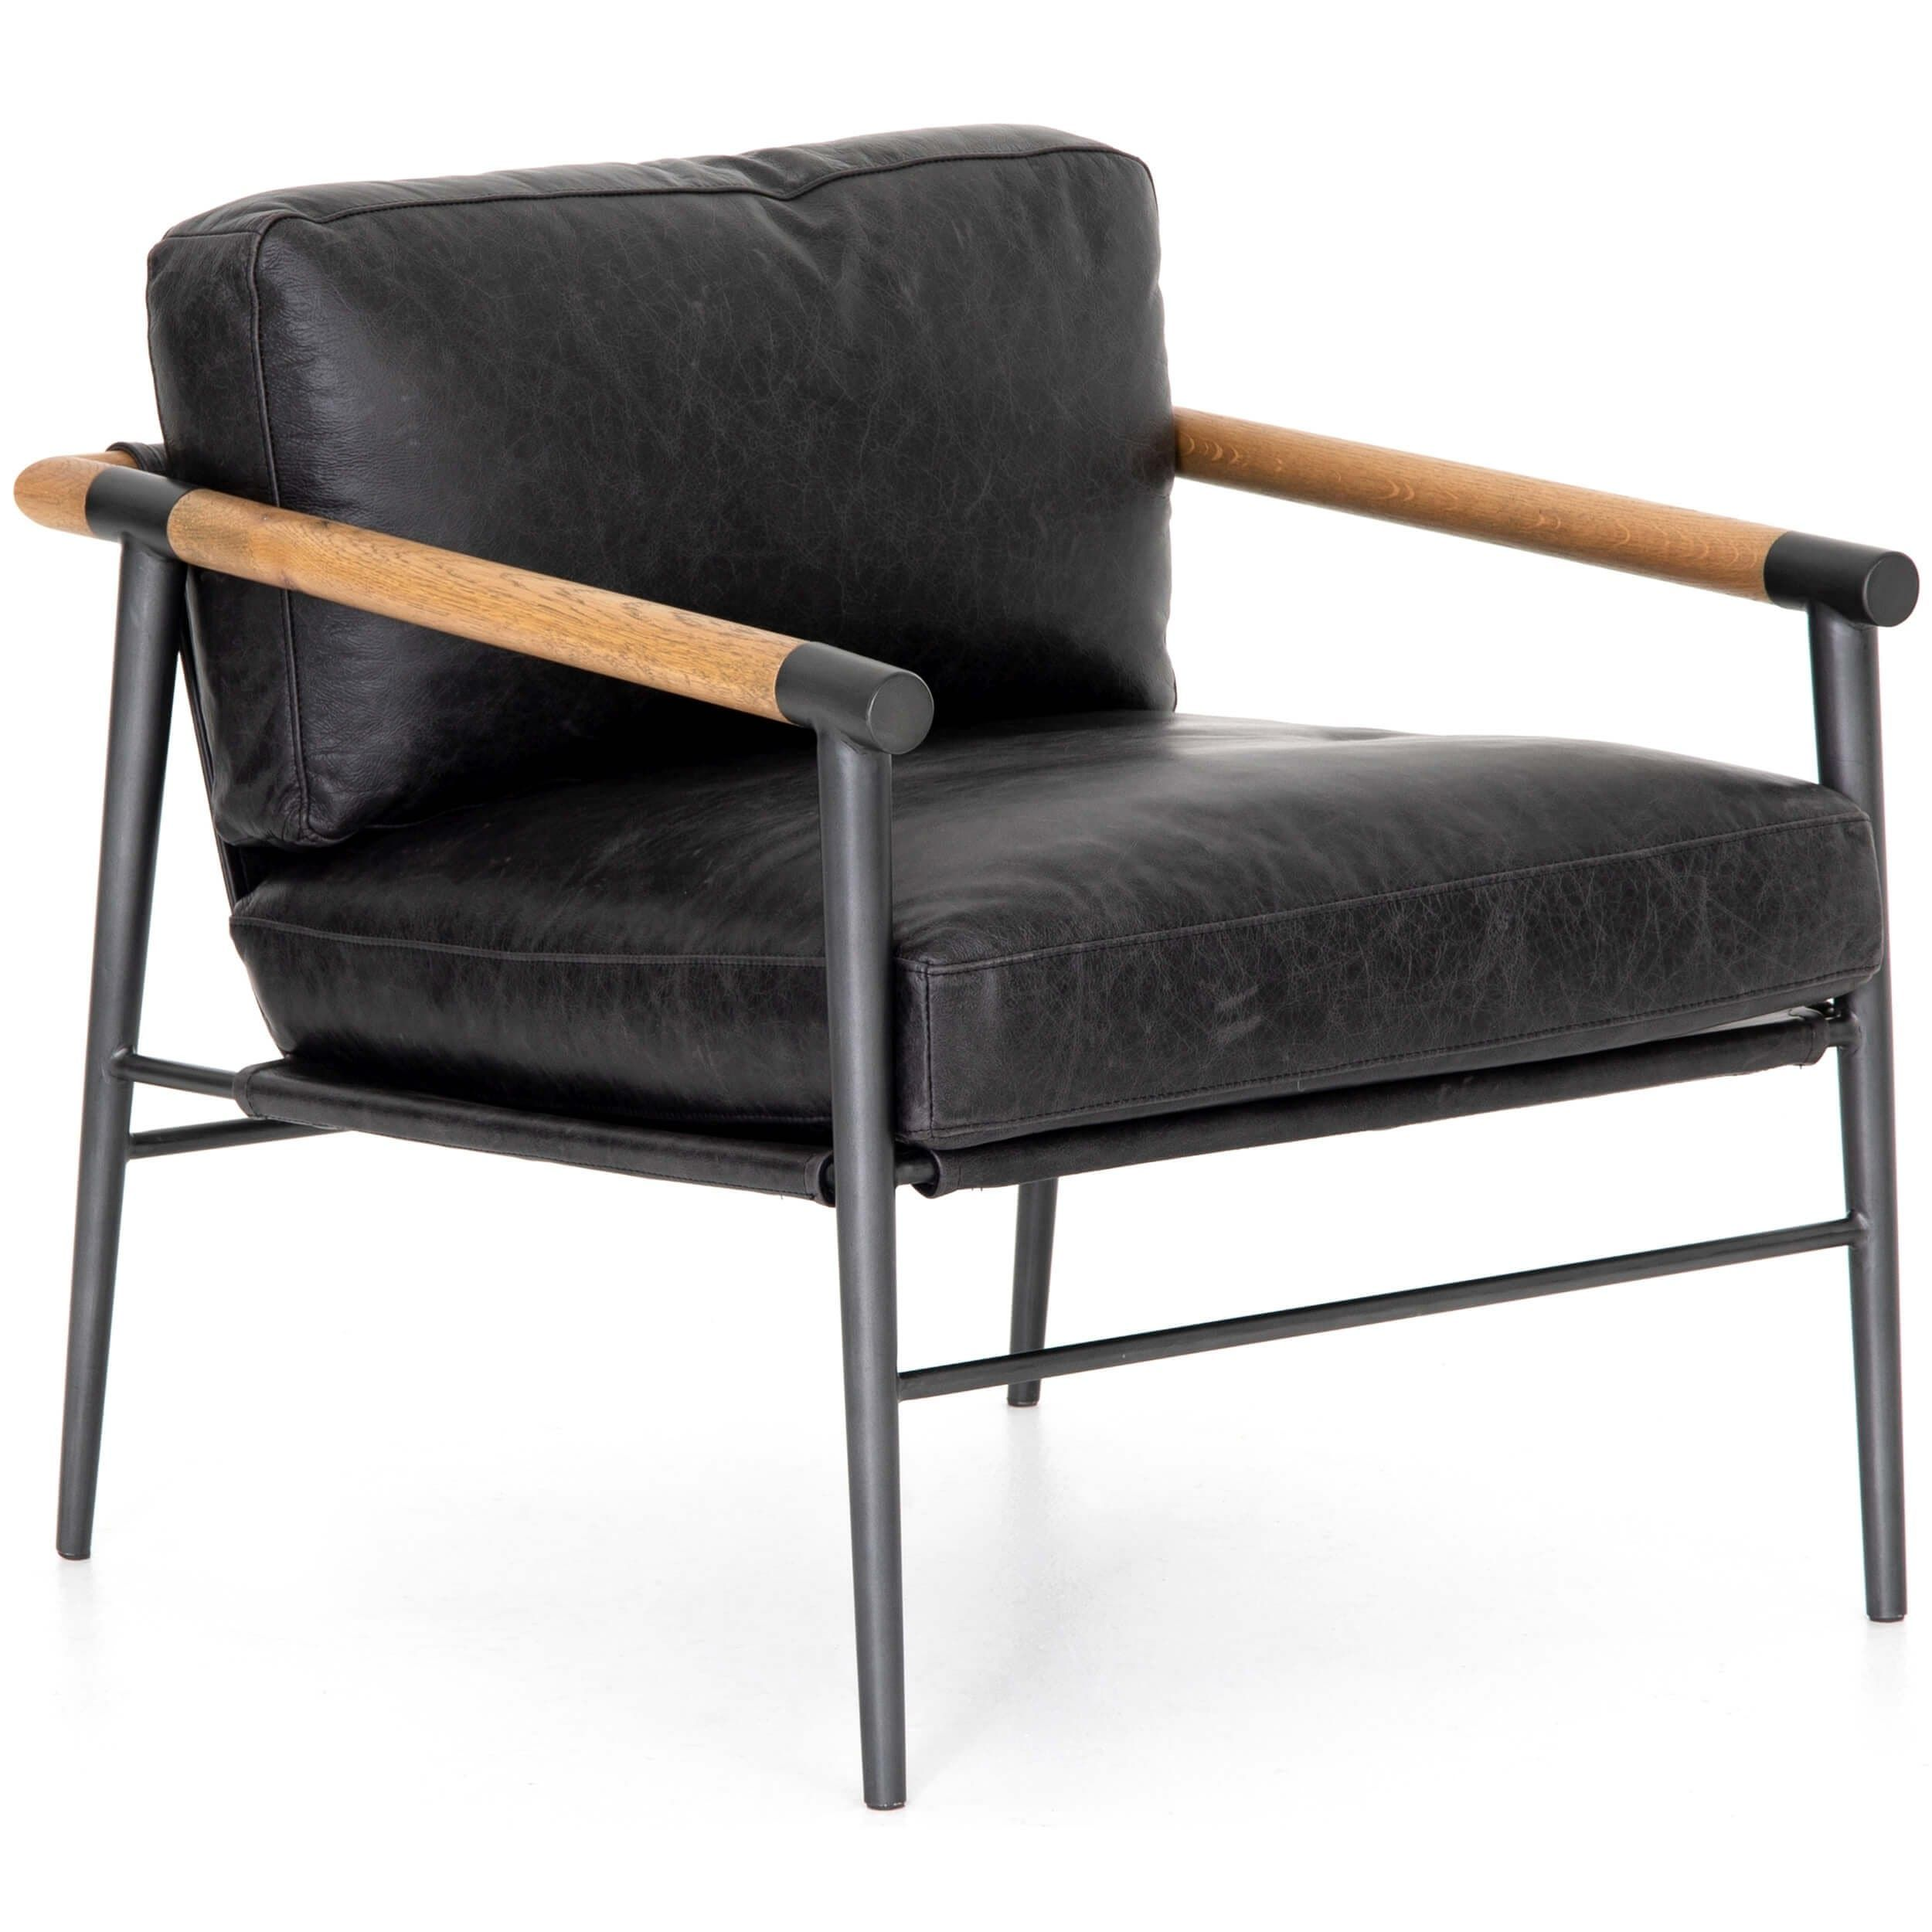 Available online only. Ships directly from the manufacturer. The Rowe Leather Chair will give a dose of modern-industrial edge that your home is asking for.